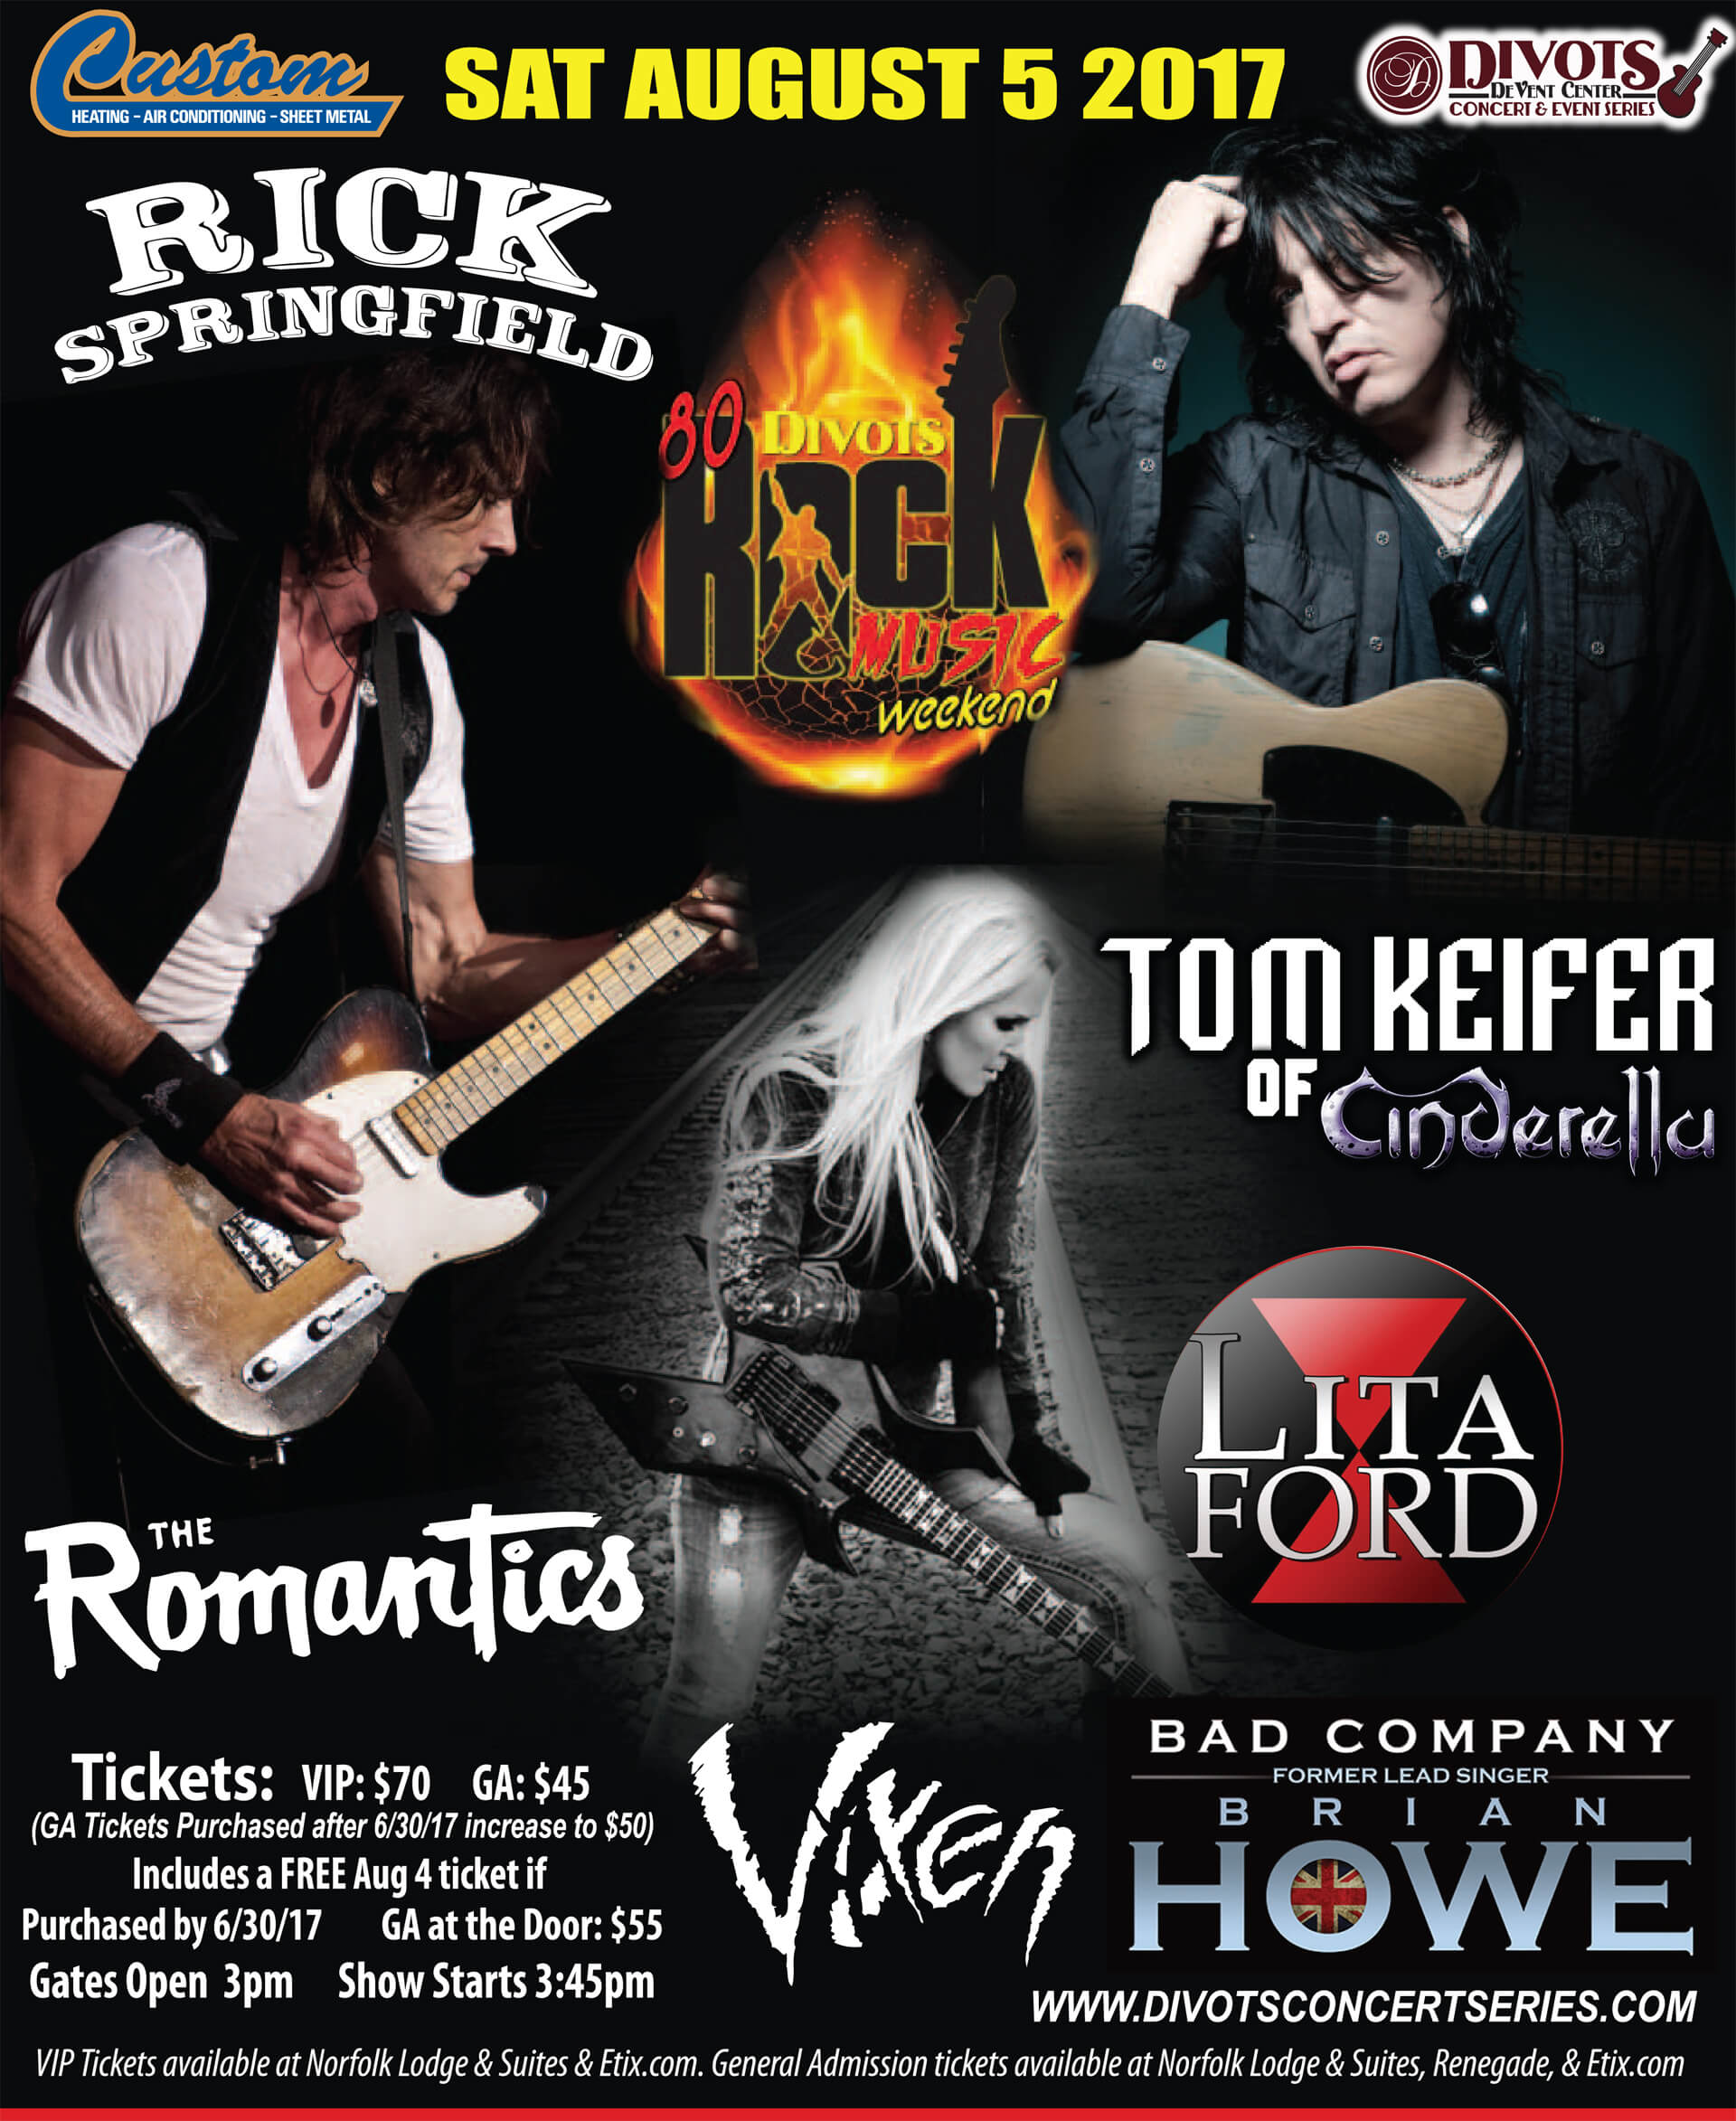 80's Rock Weekend live in concert at Divots DeVent Center featuring 